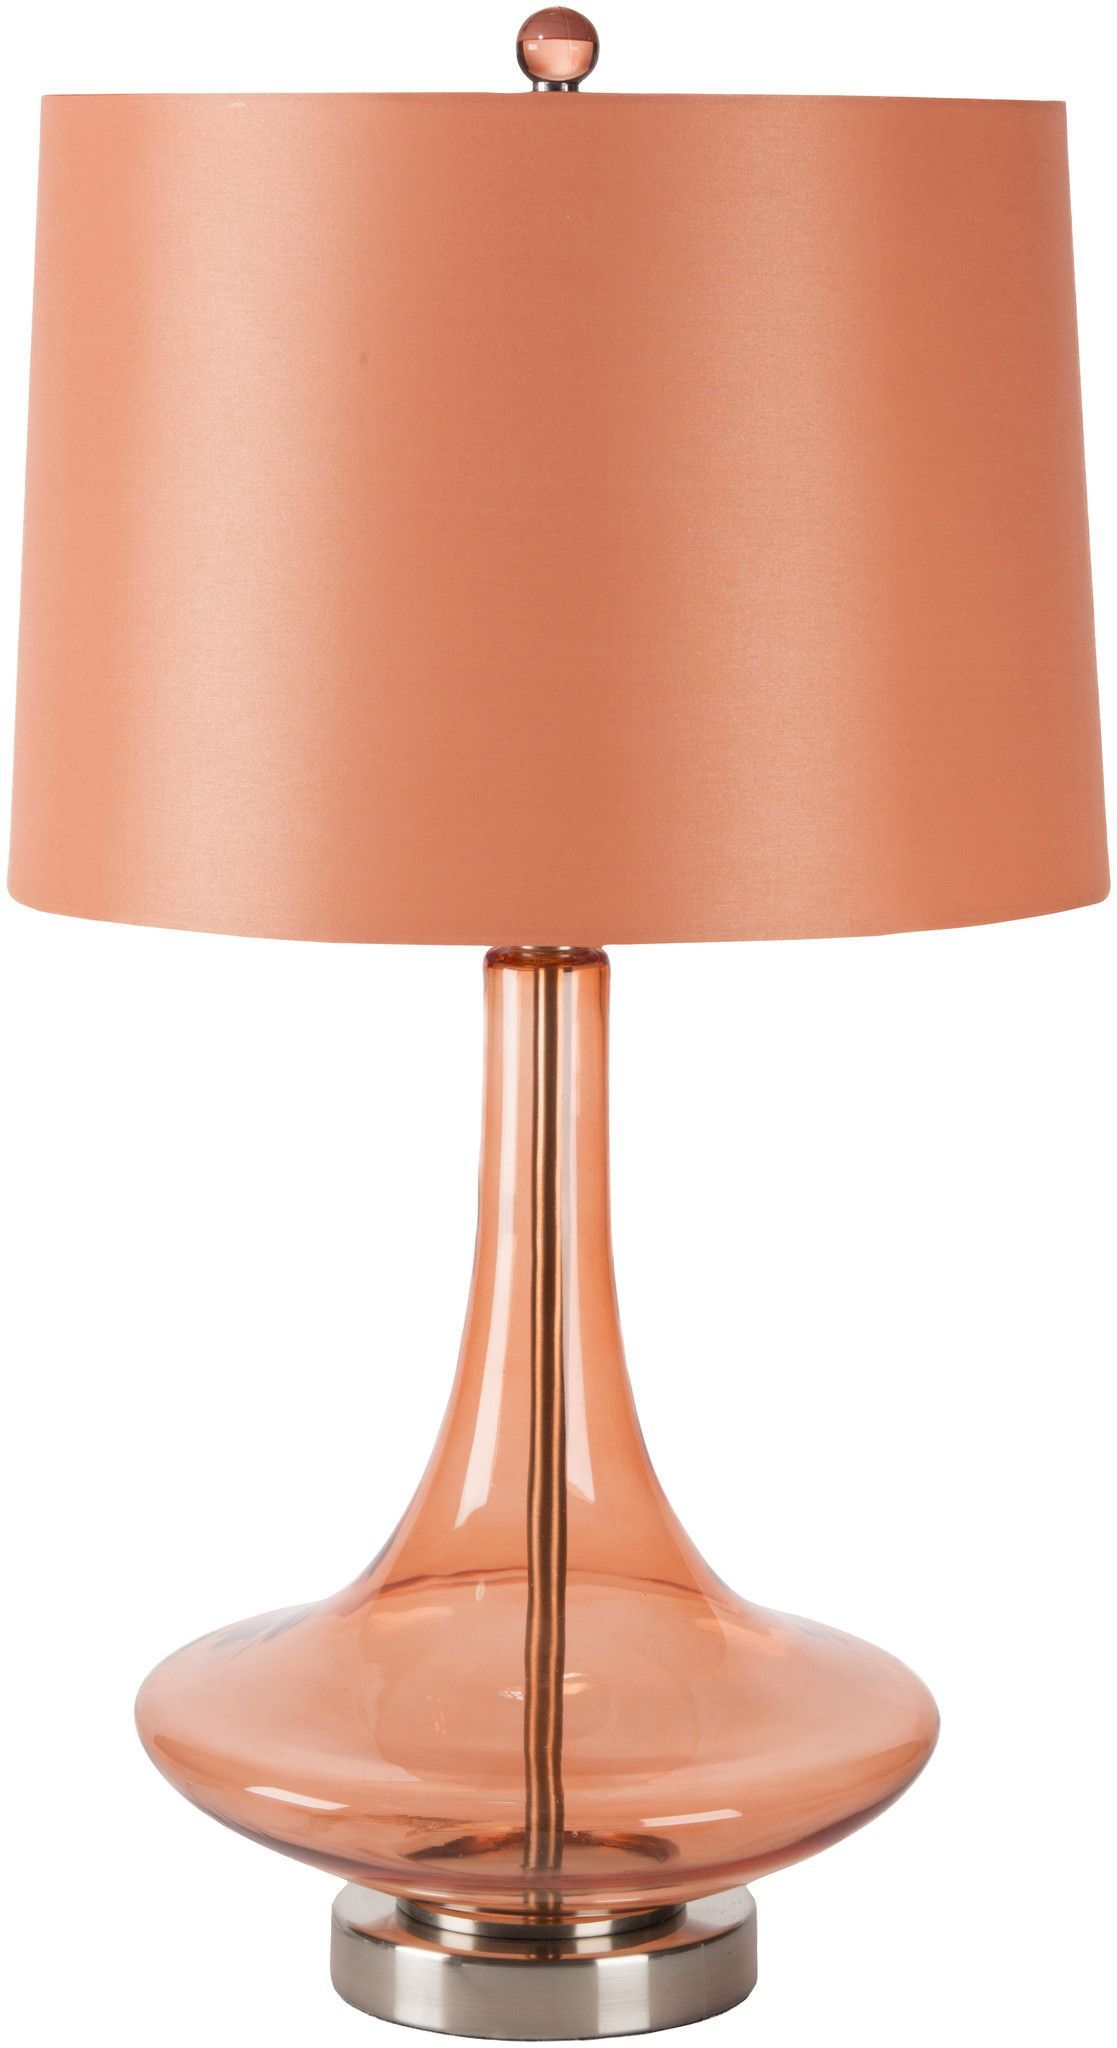 Zoey modern table lamp transparent orange orange products zoe table lamp in orange joss main a colorful addition to your reading nook or bedside this stylish table lamp showcases a transparent glass base and geotapseo Image collections